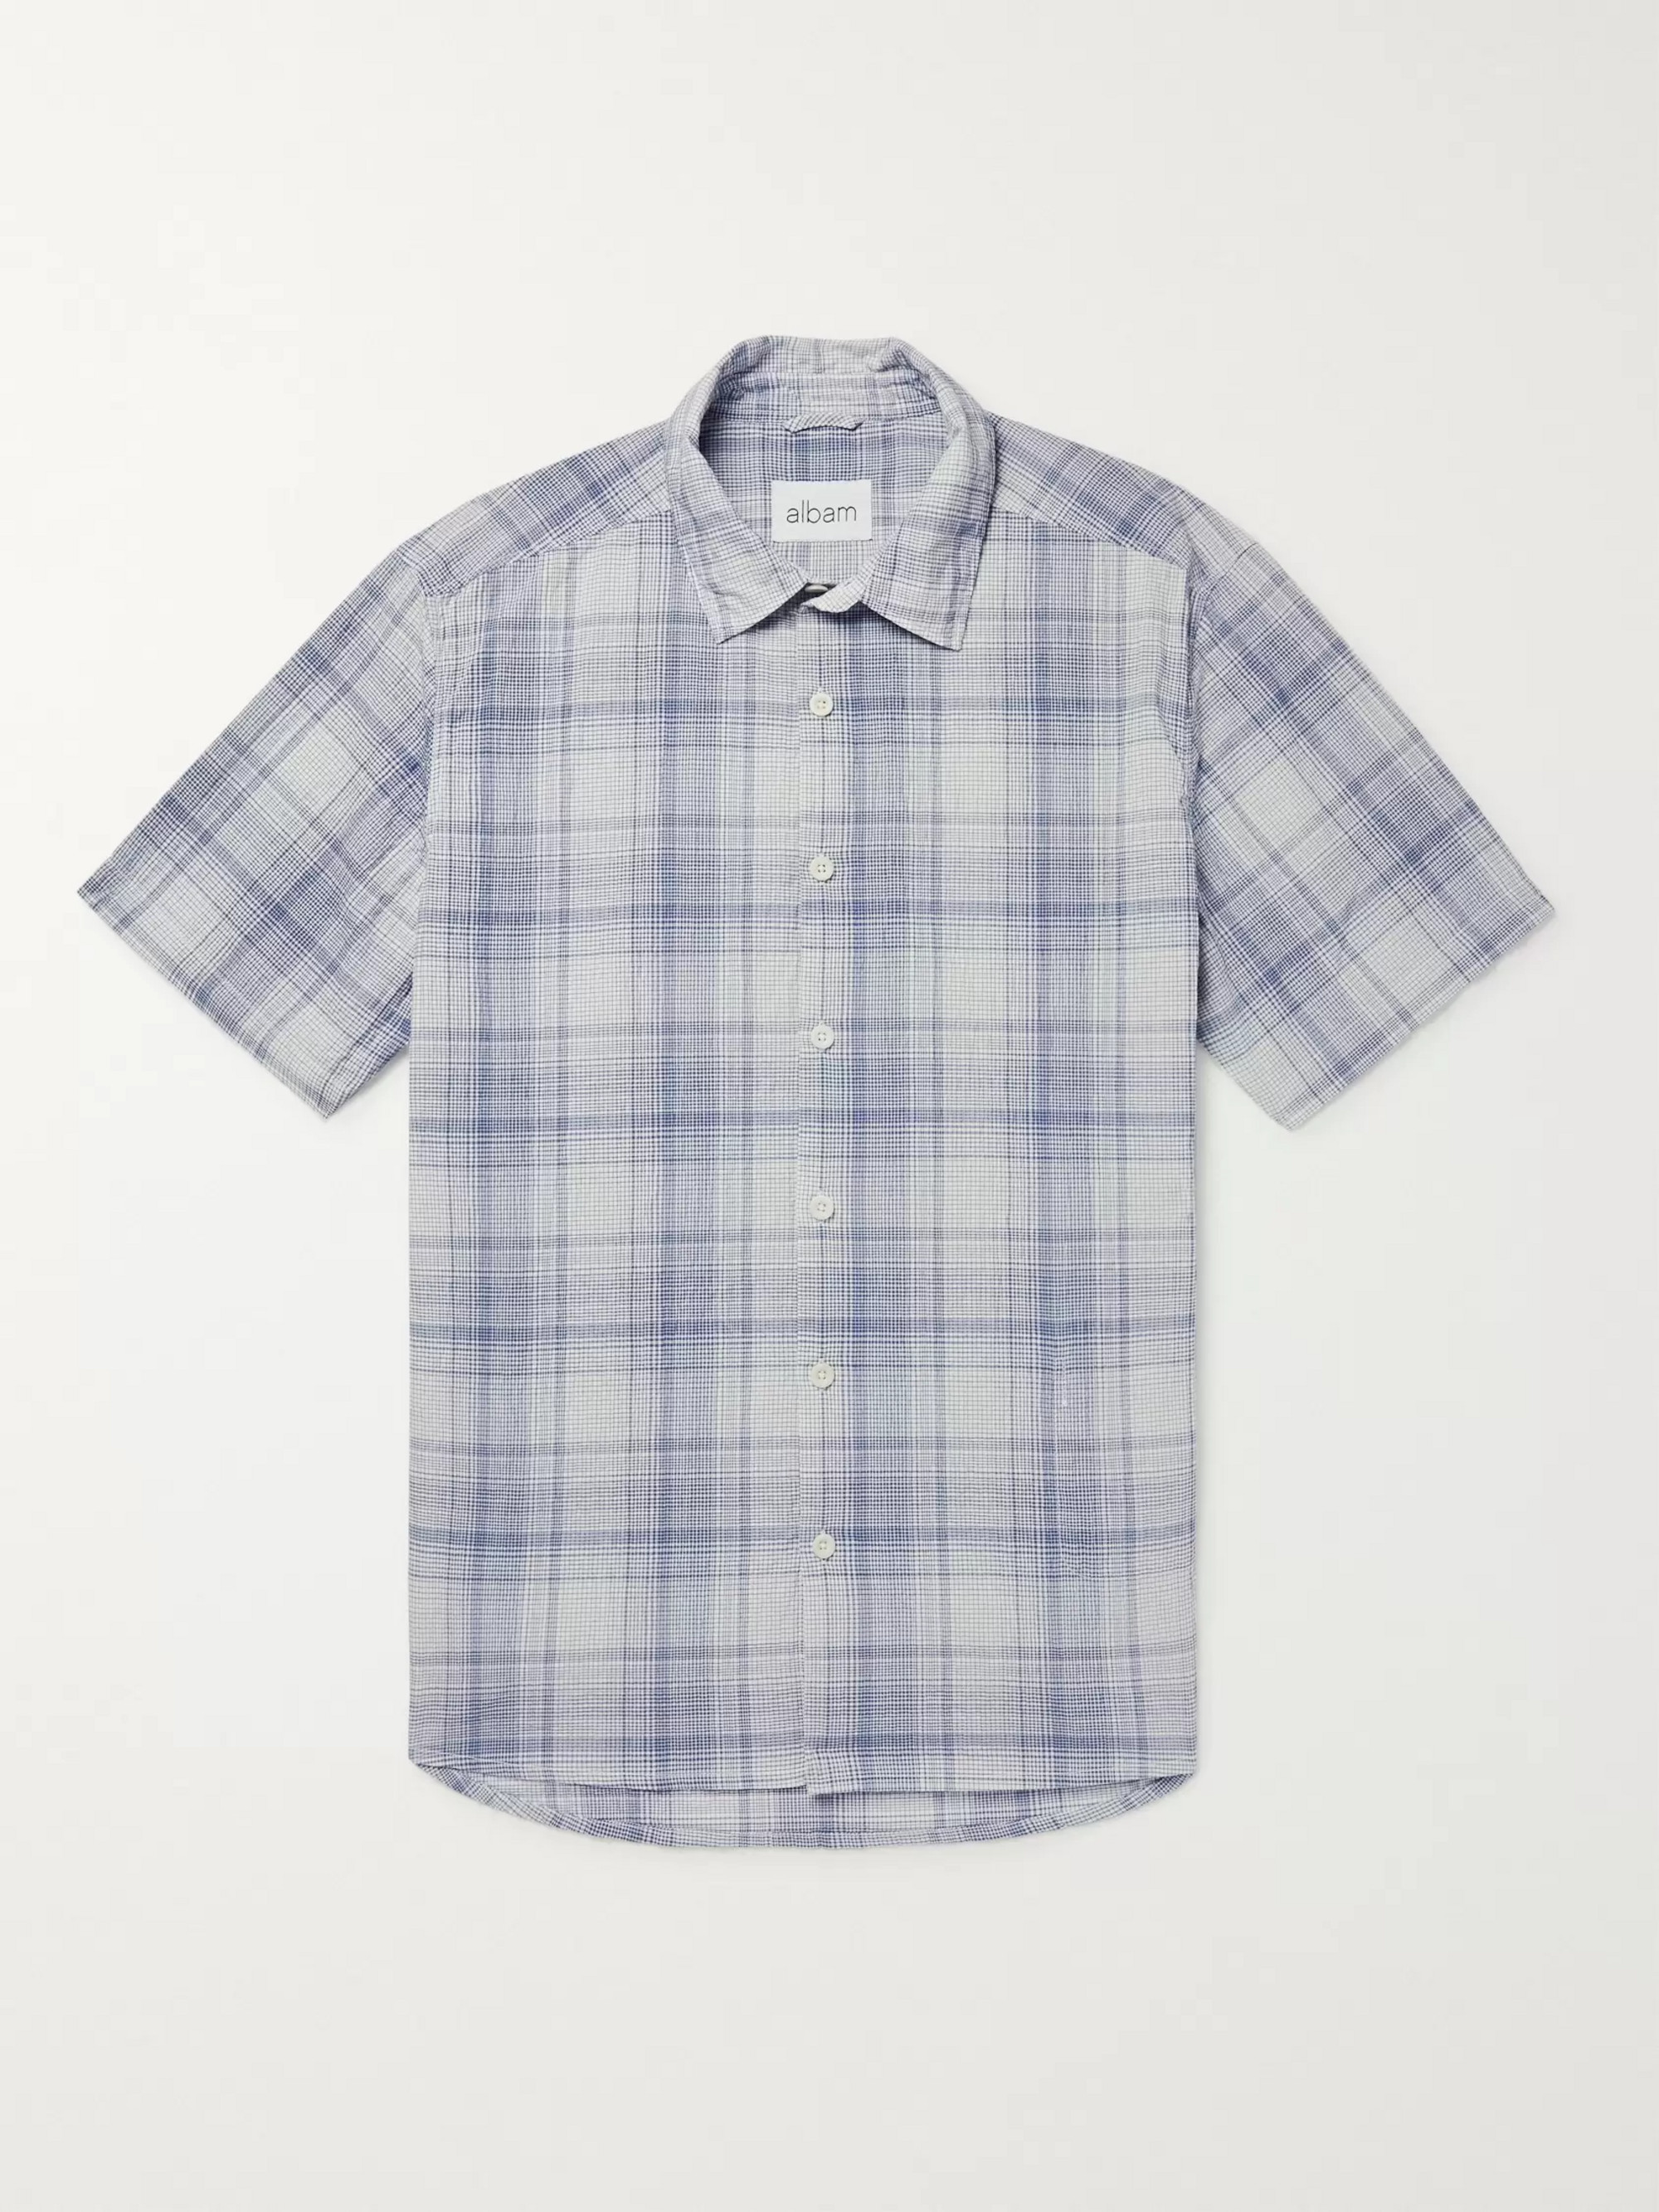 Albam Checked Cotton-Gauze Shirt